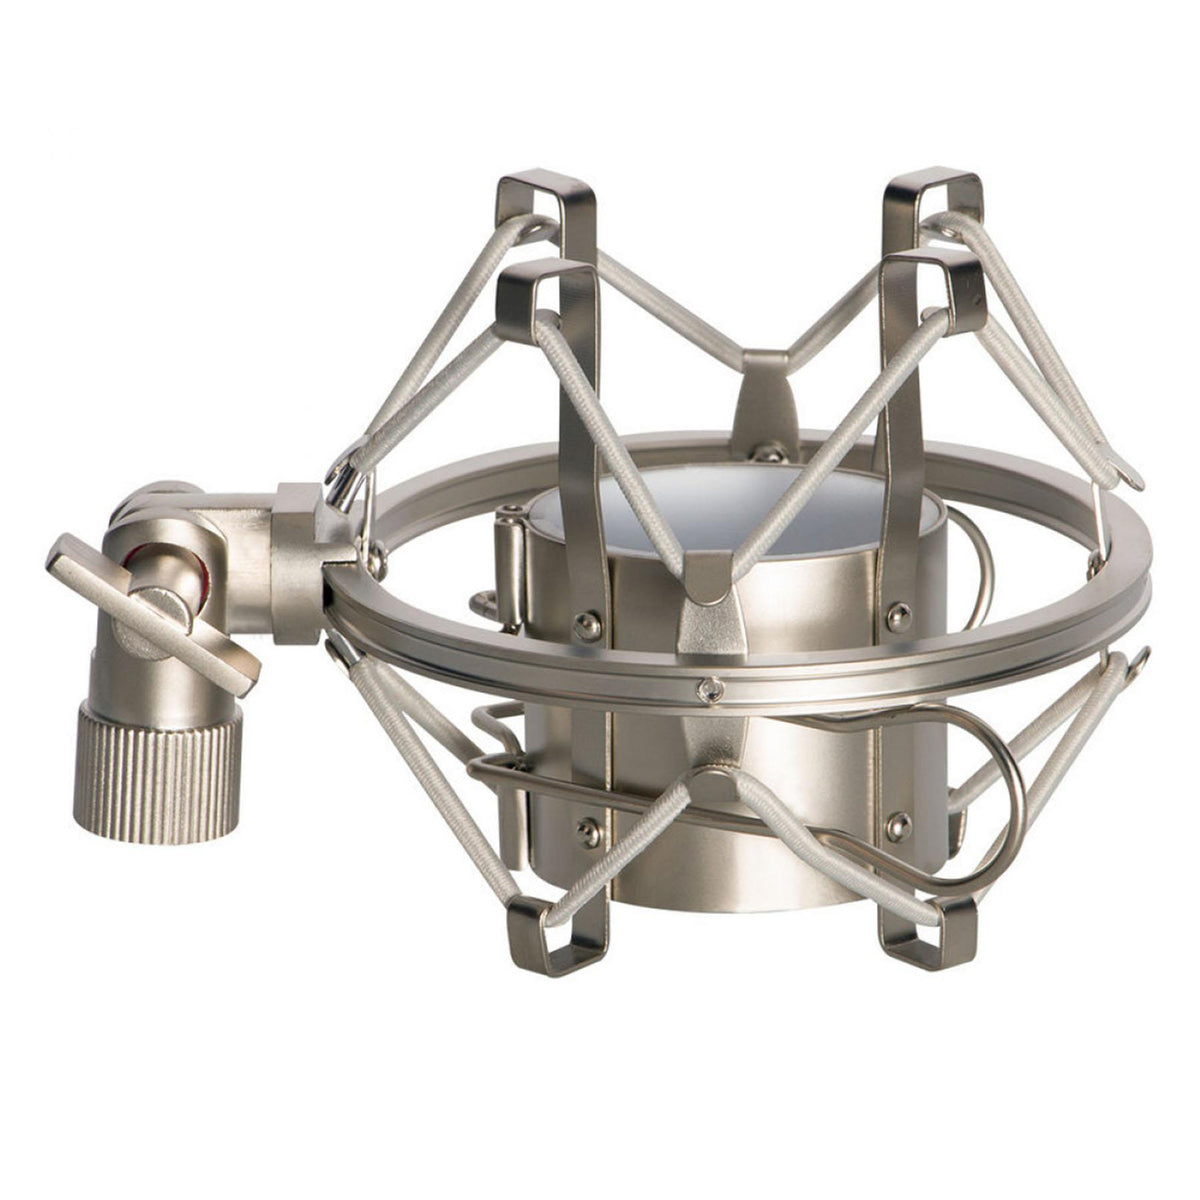 Silver Shock Mount for Rode NT1 NT2 NT1A Microphones